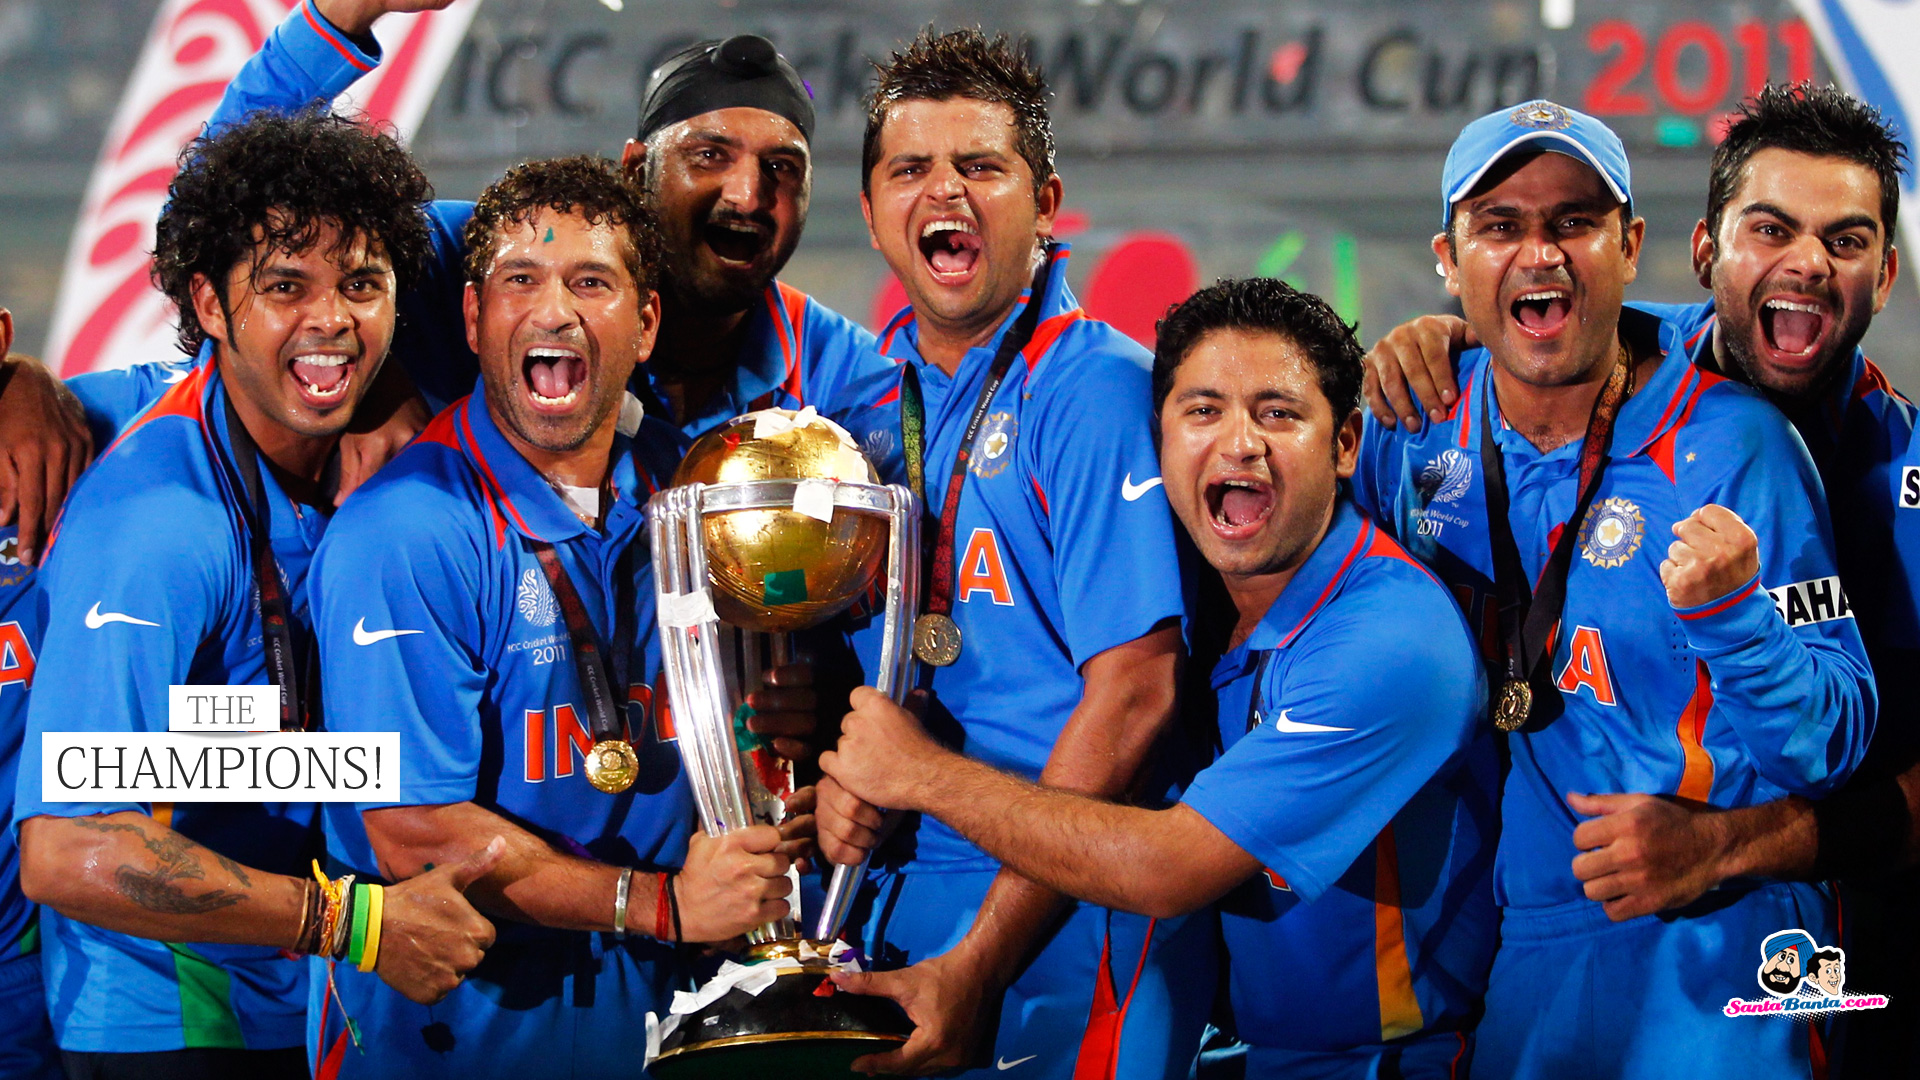 Team India 2011 World Cup 560.24 Kb